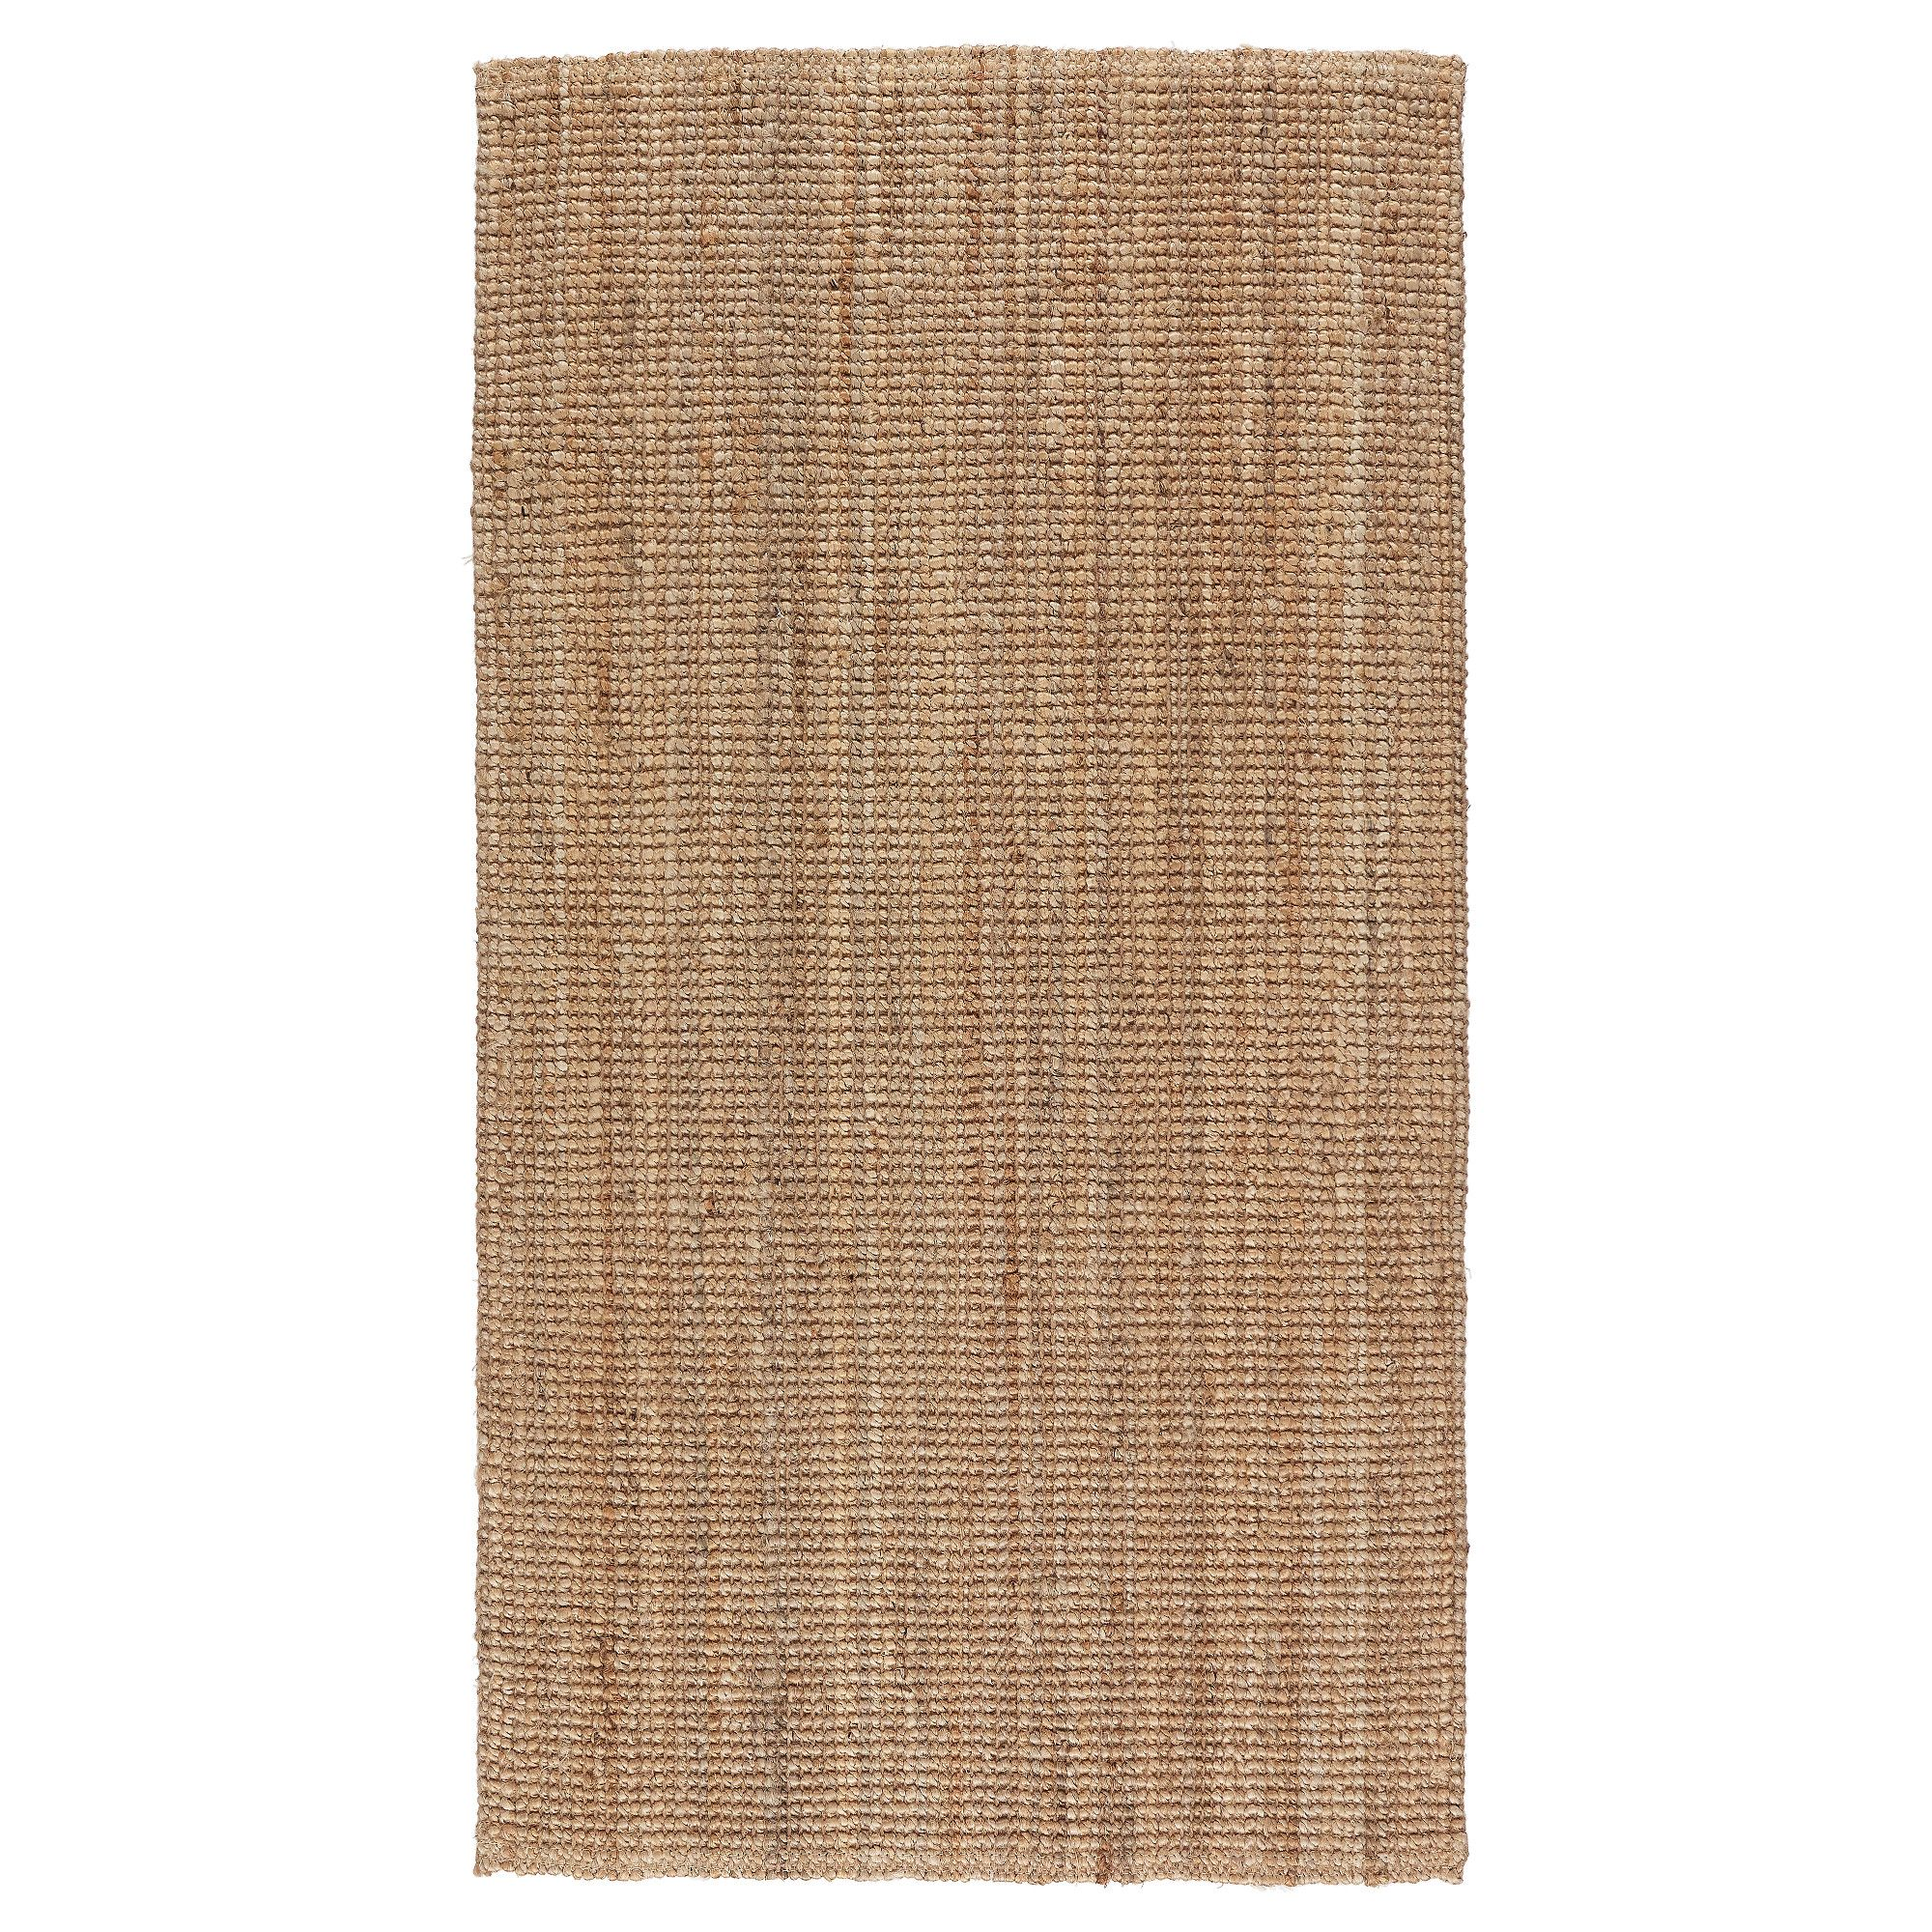 Ikea Türhaken Lohals Rug Flatwoven Natural Apartment Living Bedrooms And